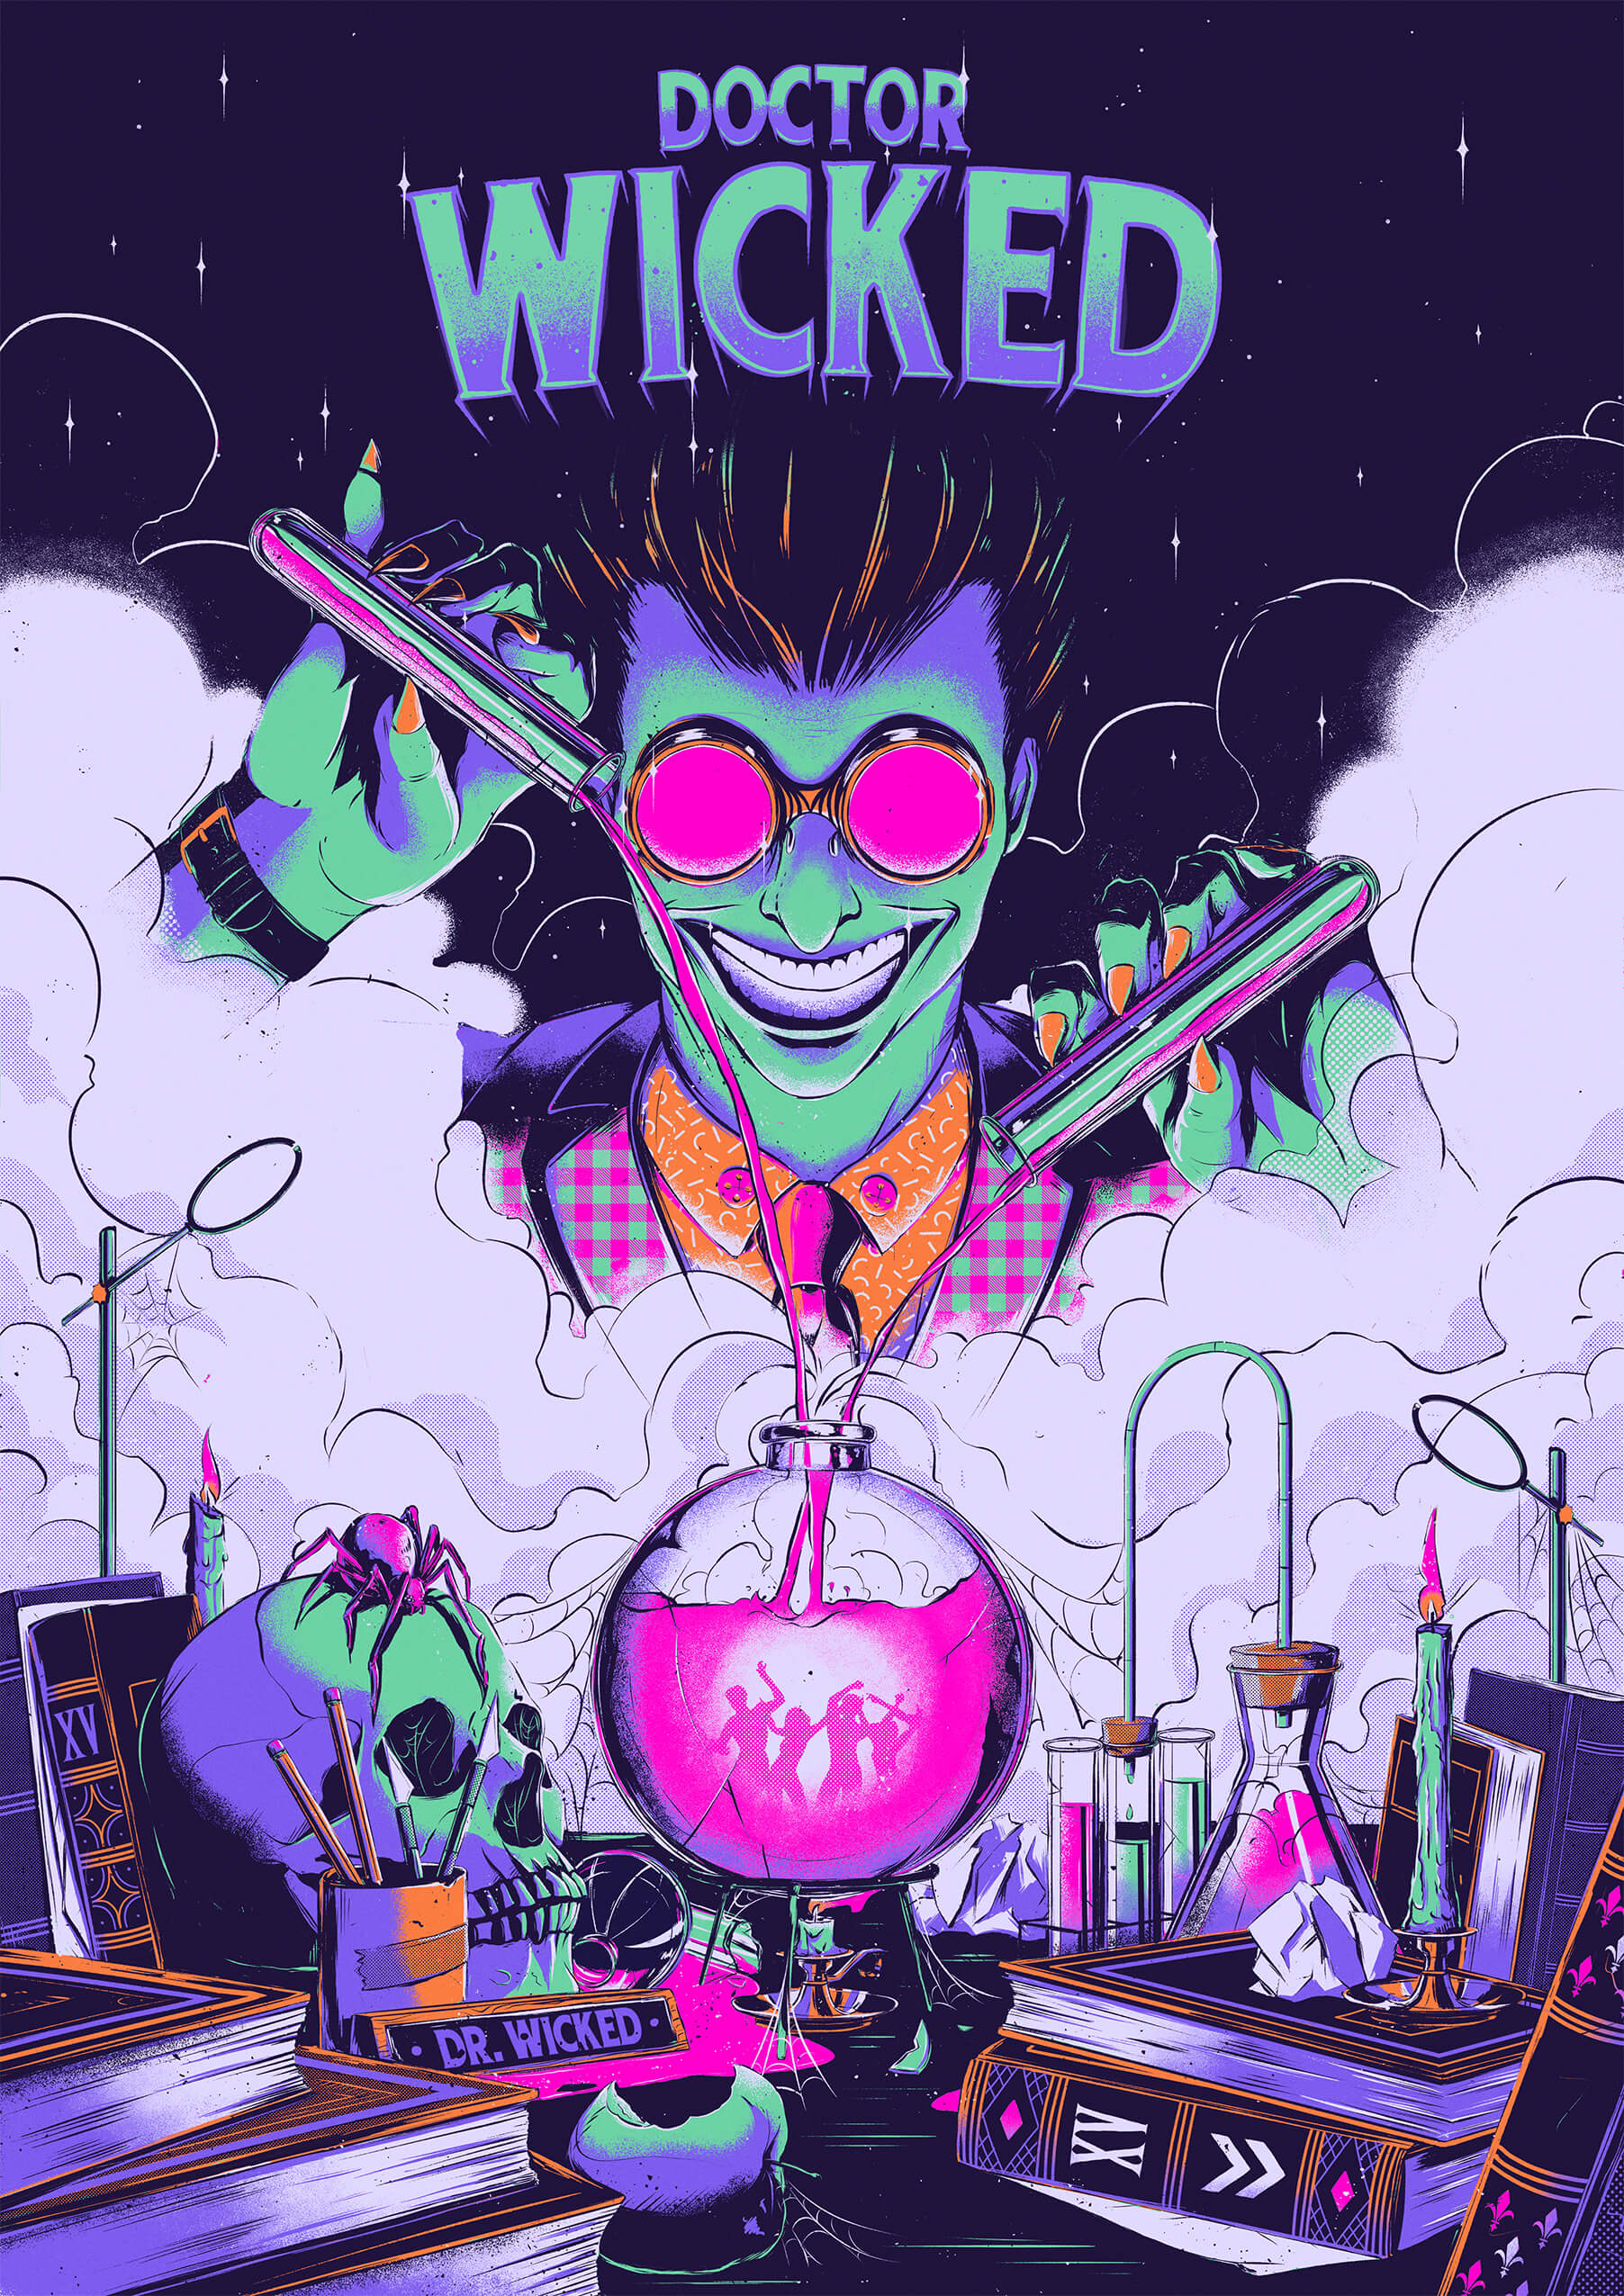 Doctor Wicked Key Art Illustrative Poster